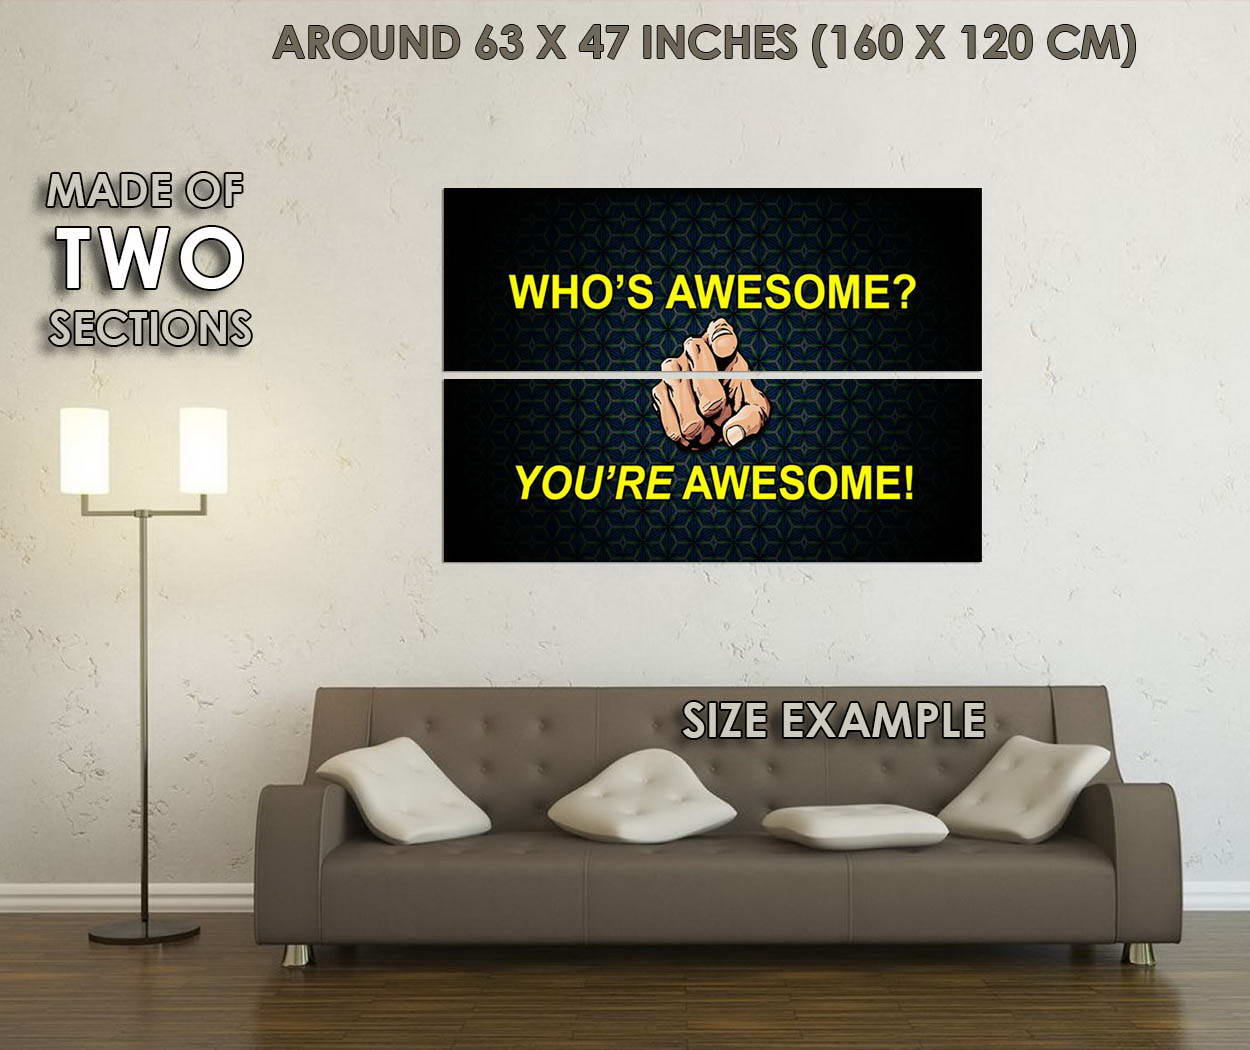 10563-You-Are-Awesome-Motivational-Quotes-LAMINATED-POSTER-CA thumbnail 6